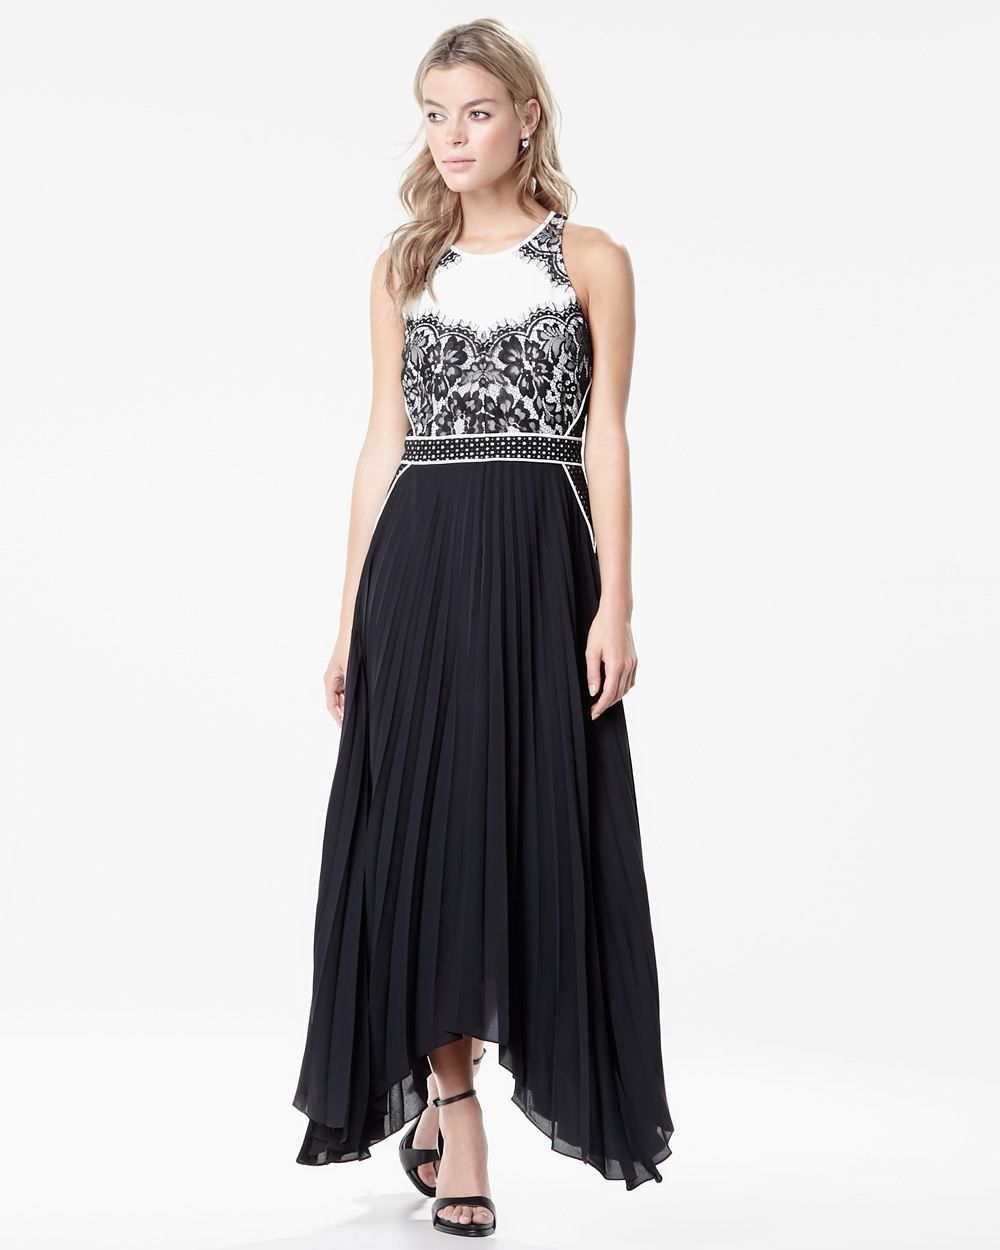 Pin by Mrs L on Party Dresses | Dresses